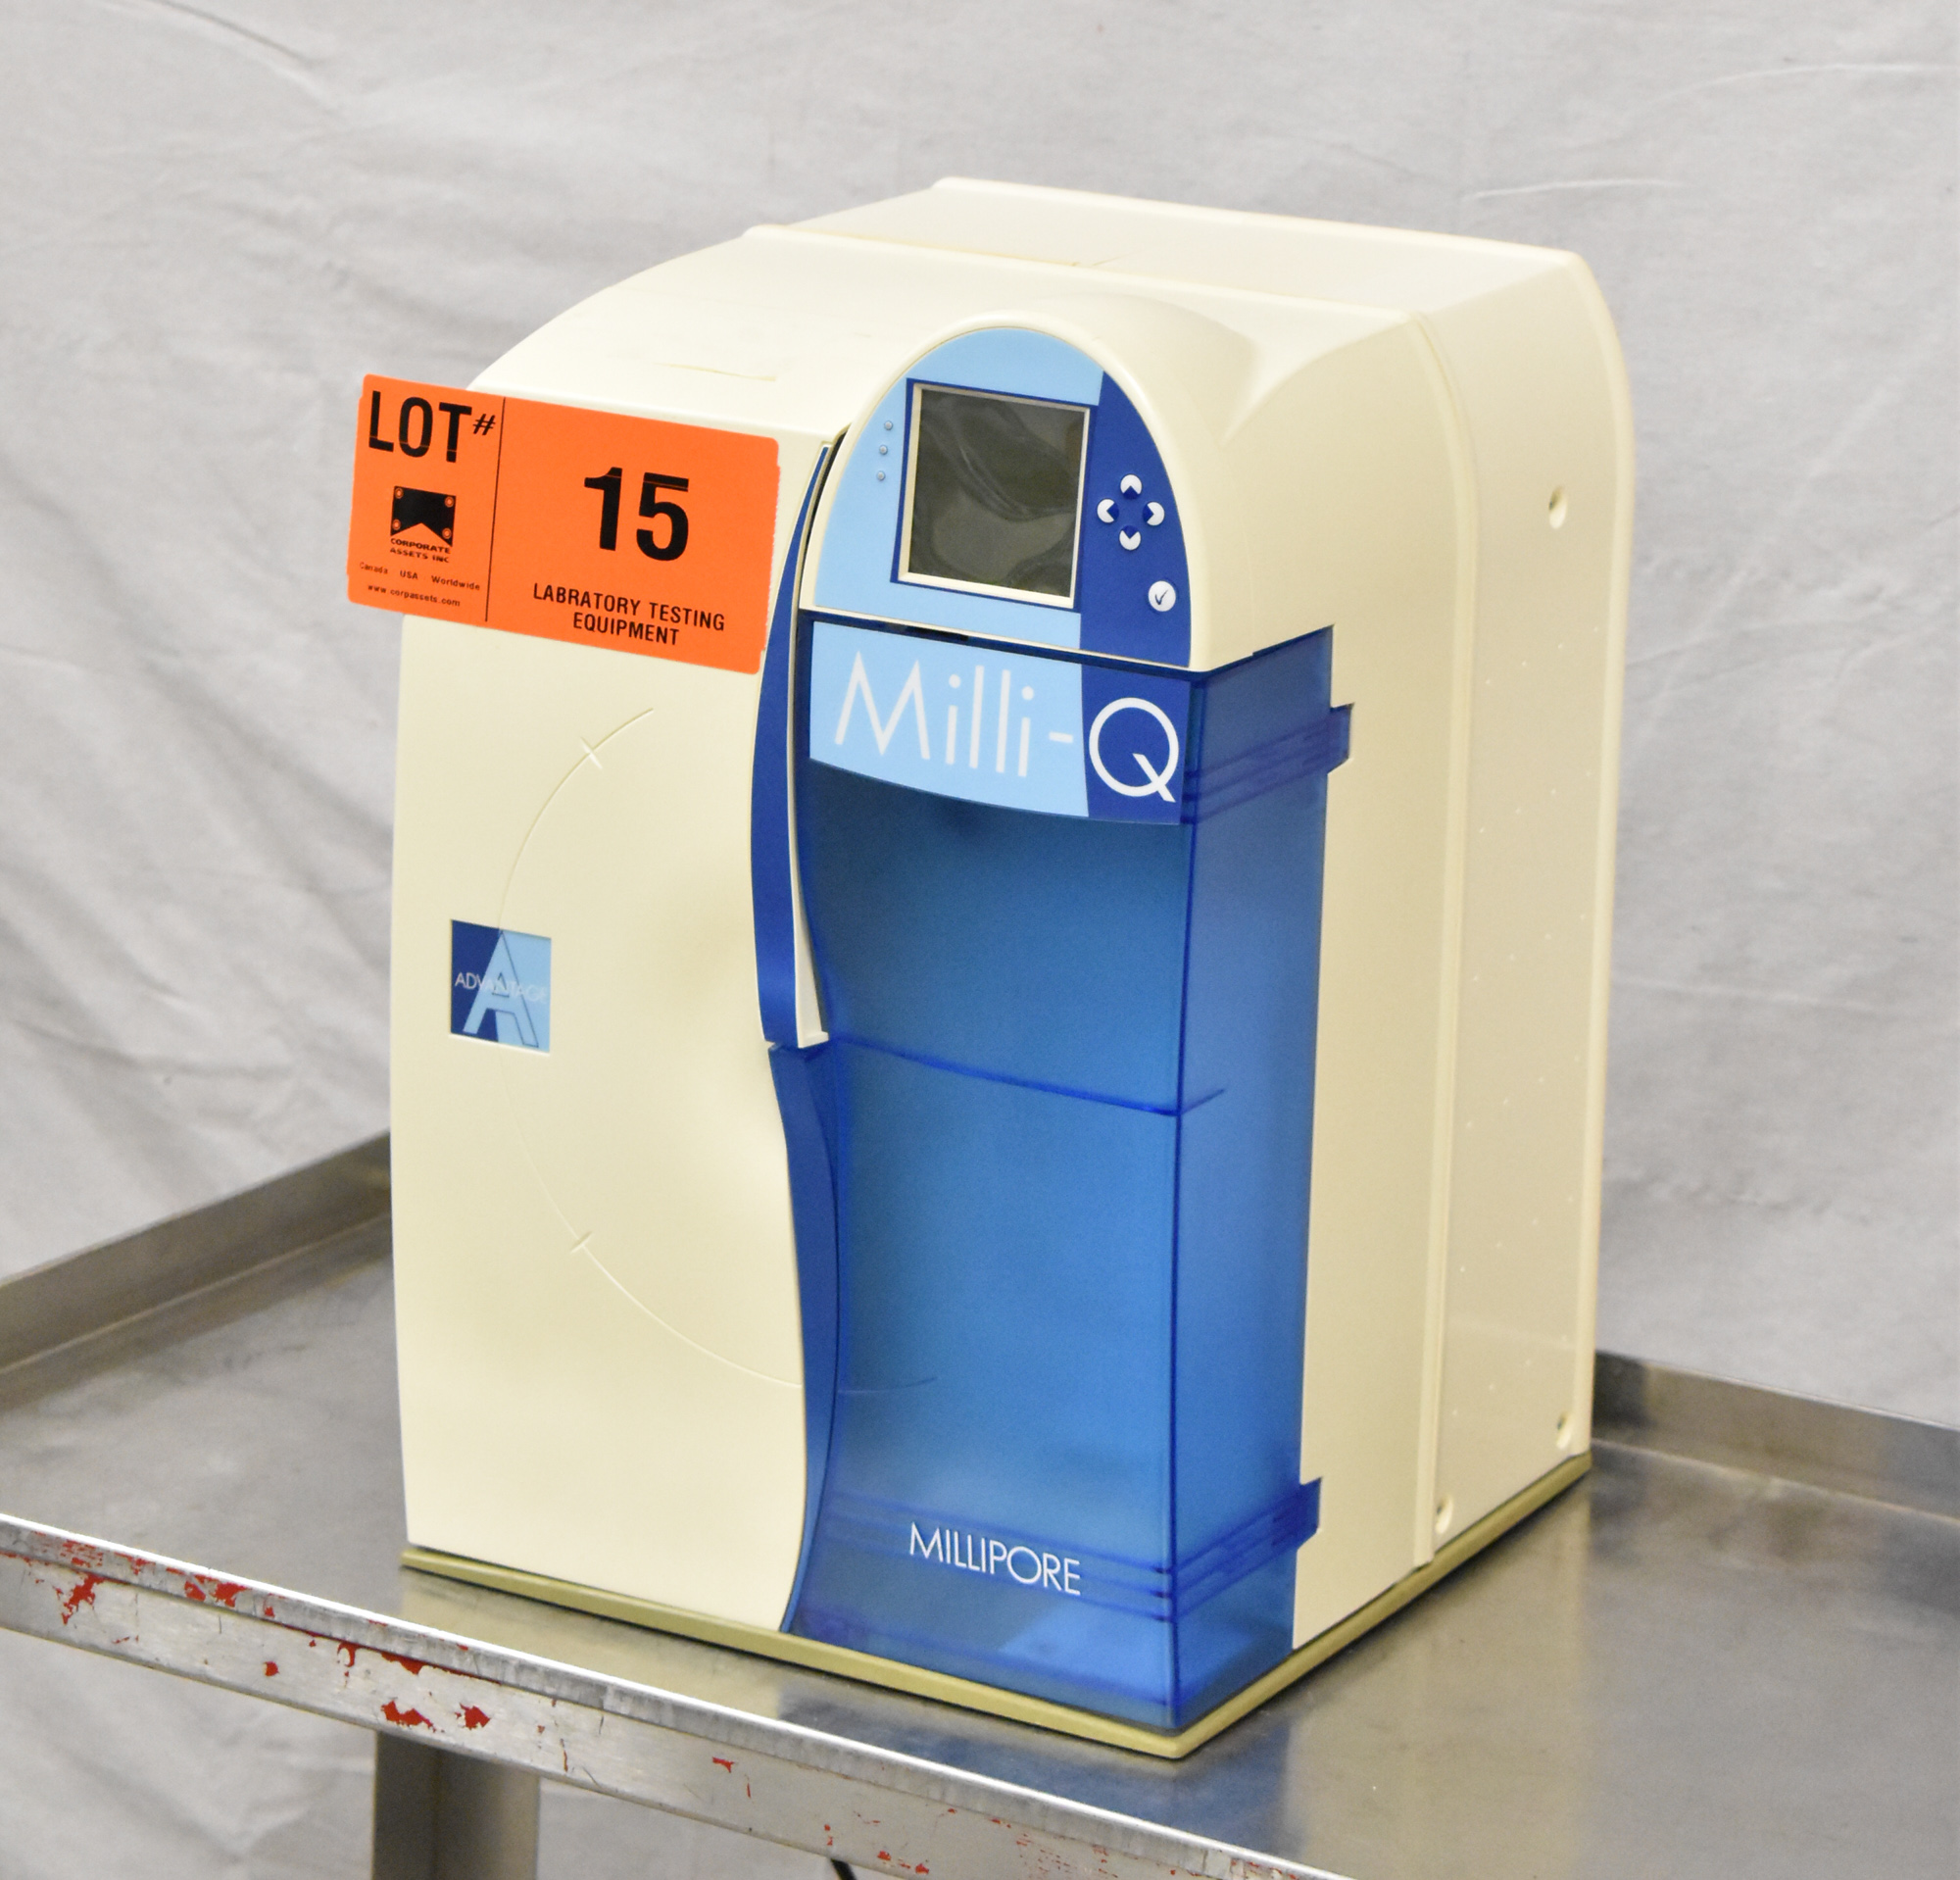 MILLIPORE MILLI-Q ADVANTAGE A10 BENCH TYPE DIGITAL WATER PURIFICATION SYSTEM, S/N F7MN699376E [$25 - Image 2 of 5